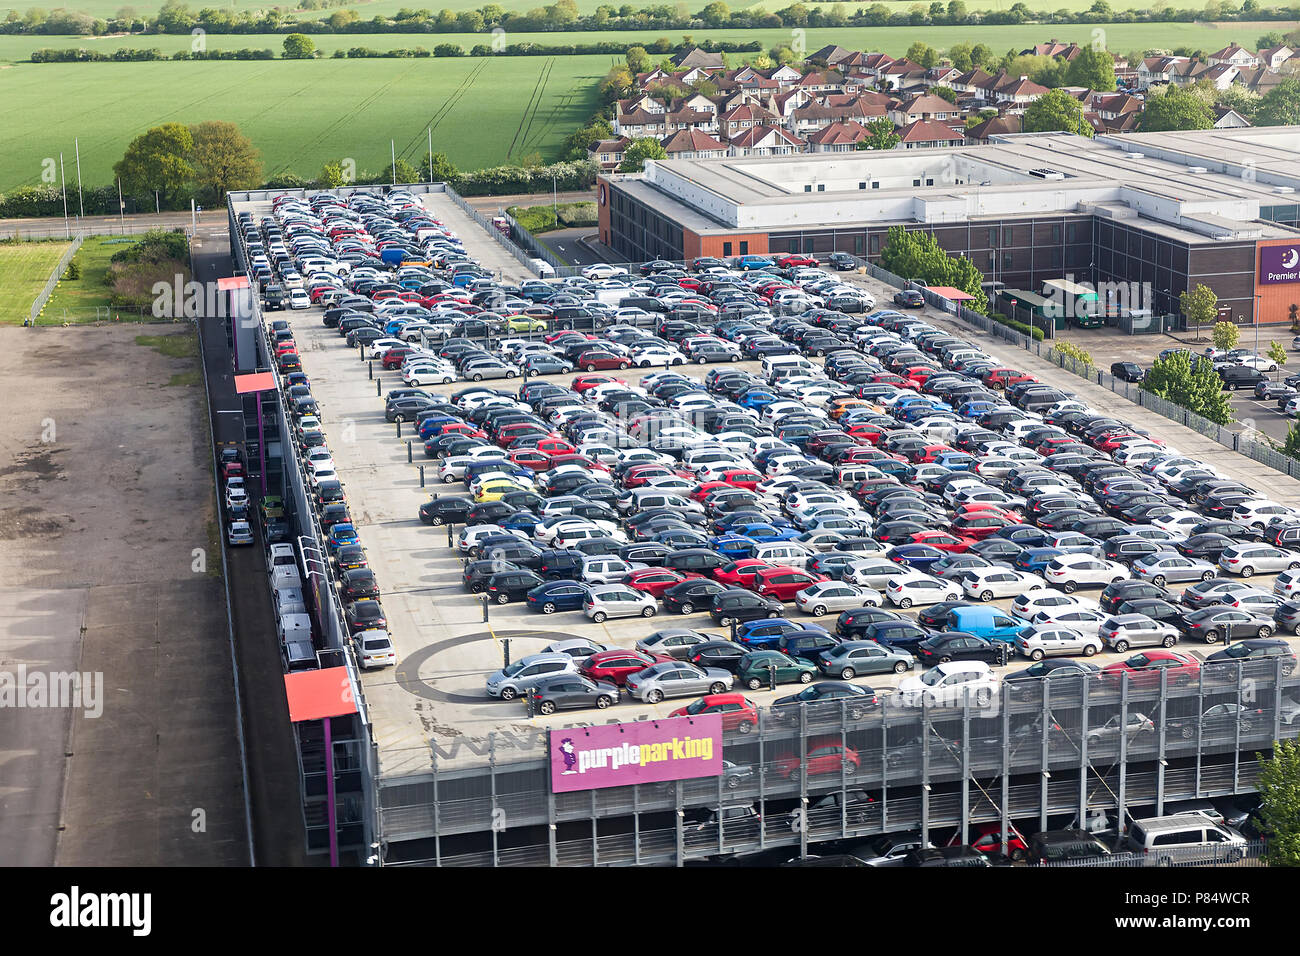 Heathrow Parking Stock Photos Heathrow Parking Stock Images Alamy